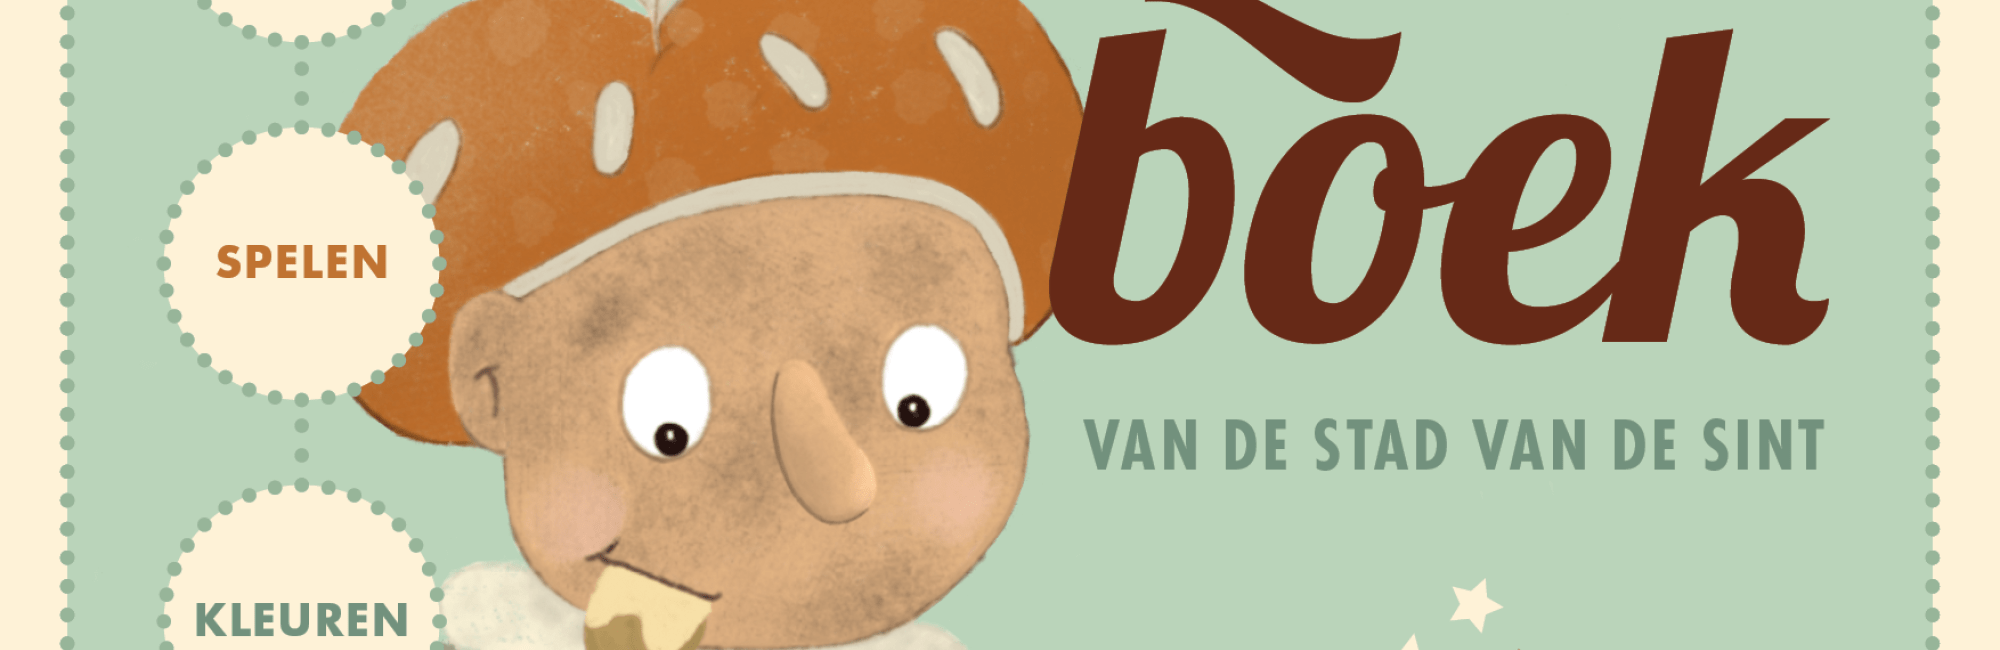 doe-en liedboek cover Sint